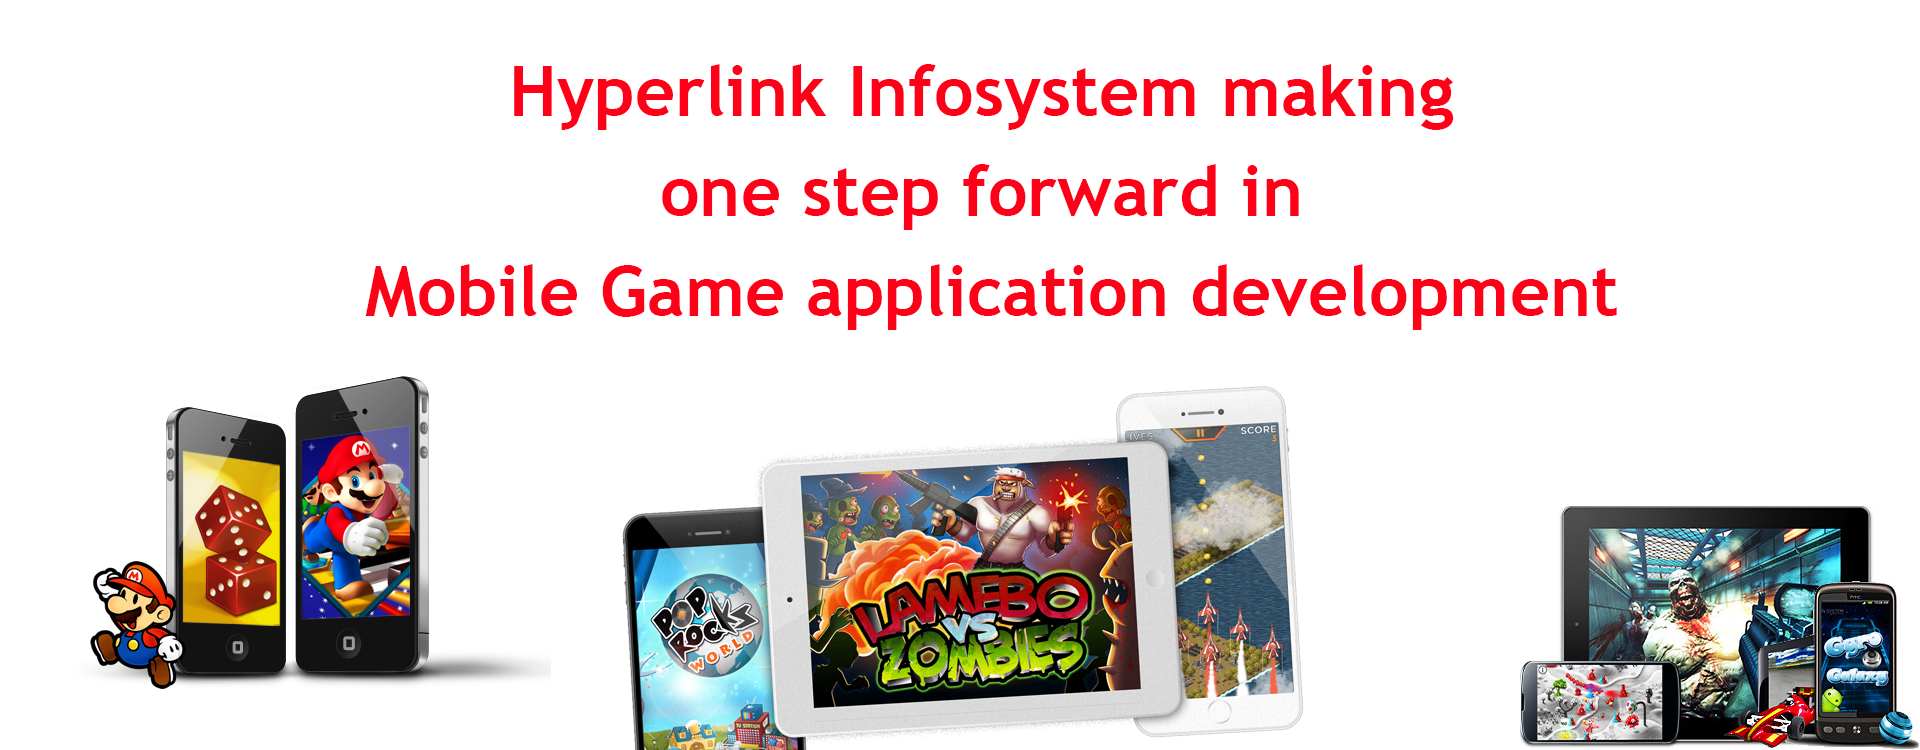 Hyperlink Infosystem making one step forward in Mobile Game application development